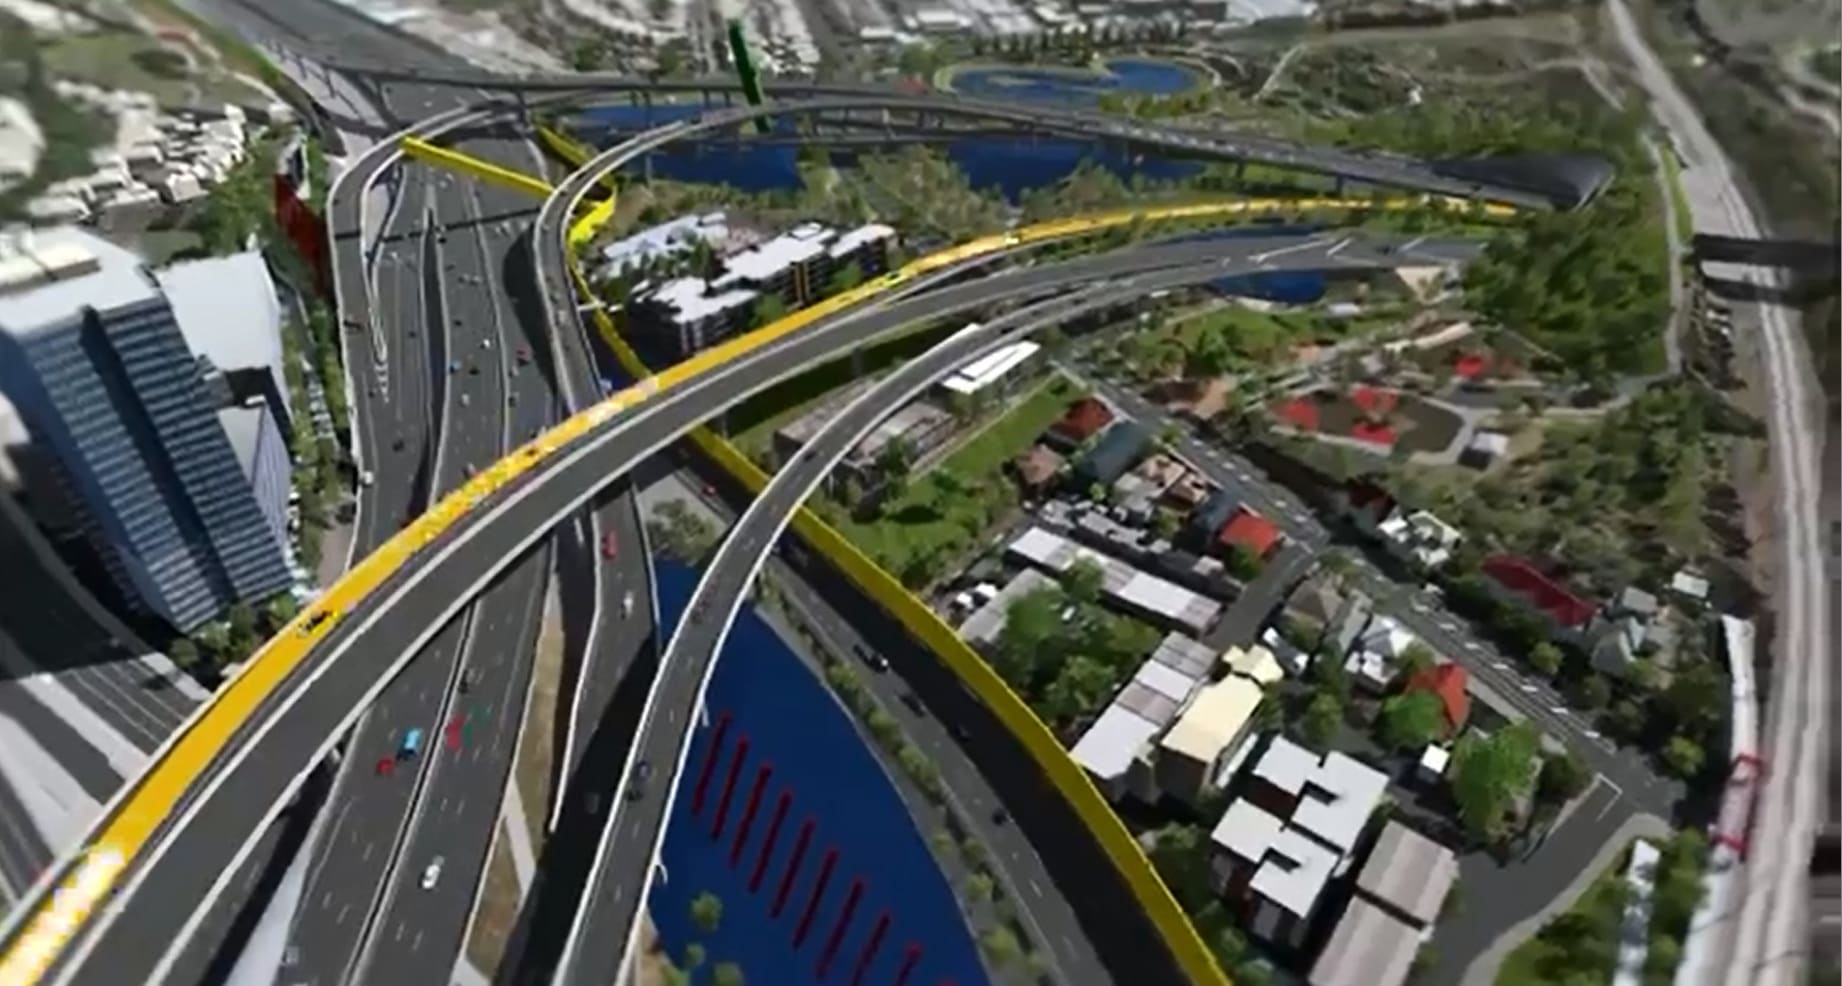 East-West Link shows miserable failure of planning process